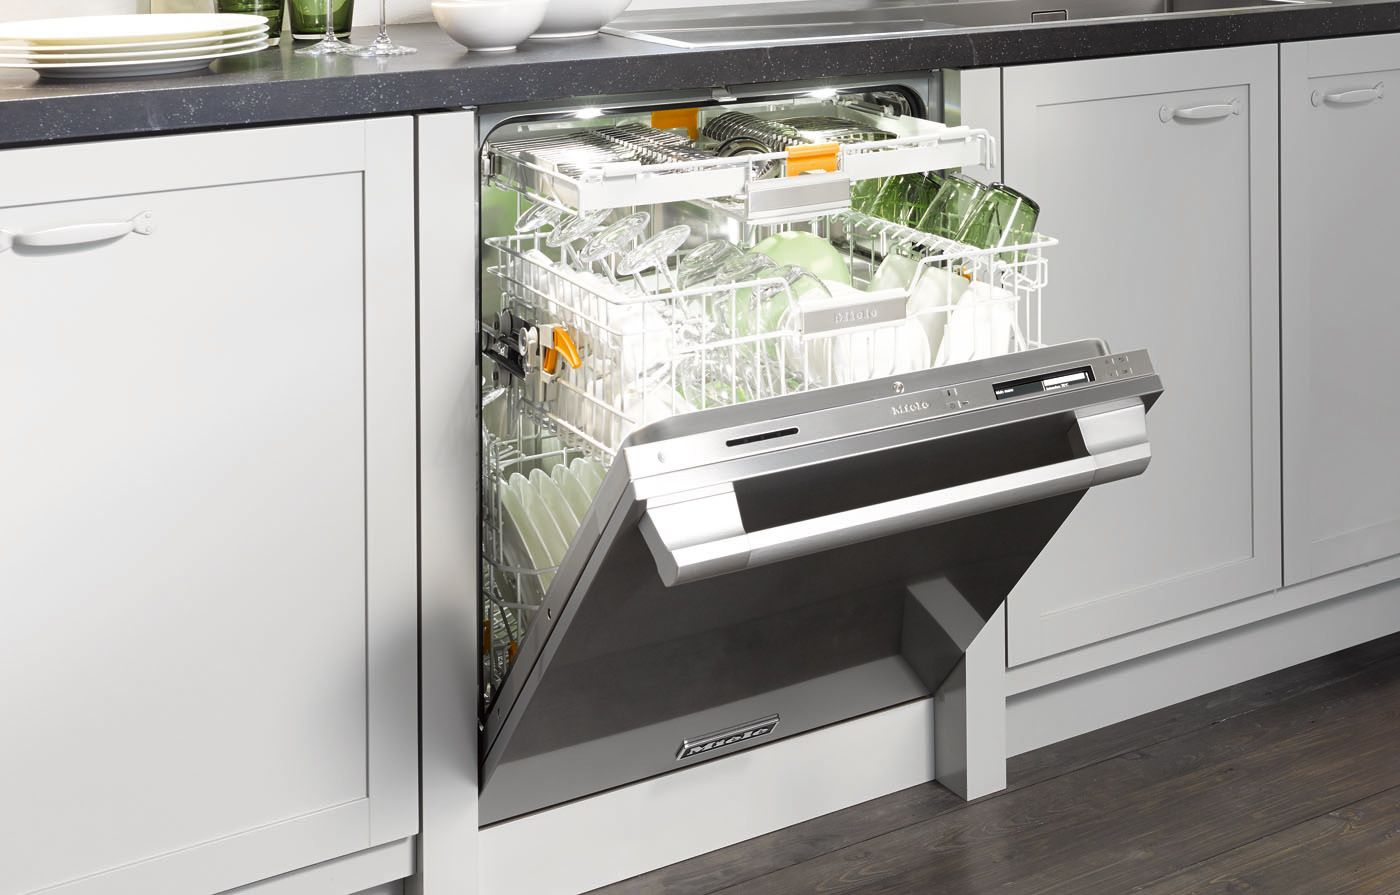 How To Get A Miele Dishwasher For Less Miele Dishwasher Kitchen Appliances Luxury Miele